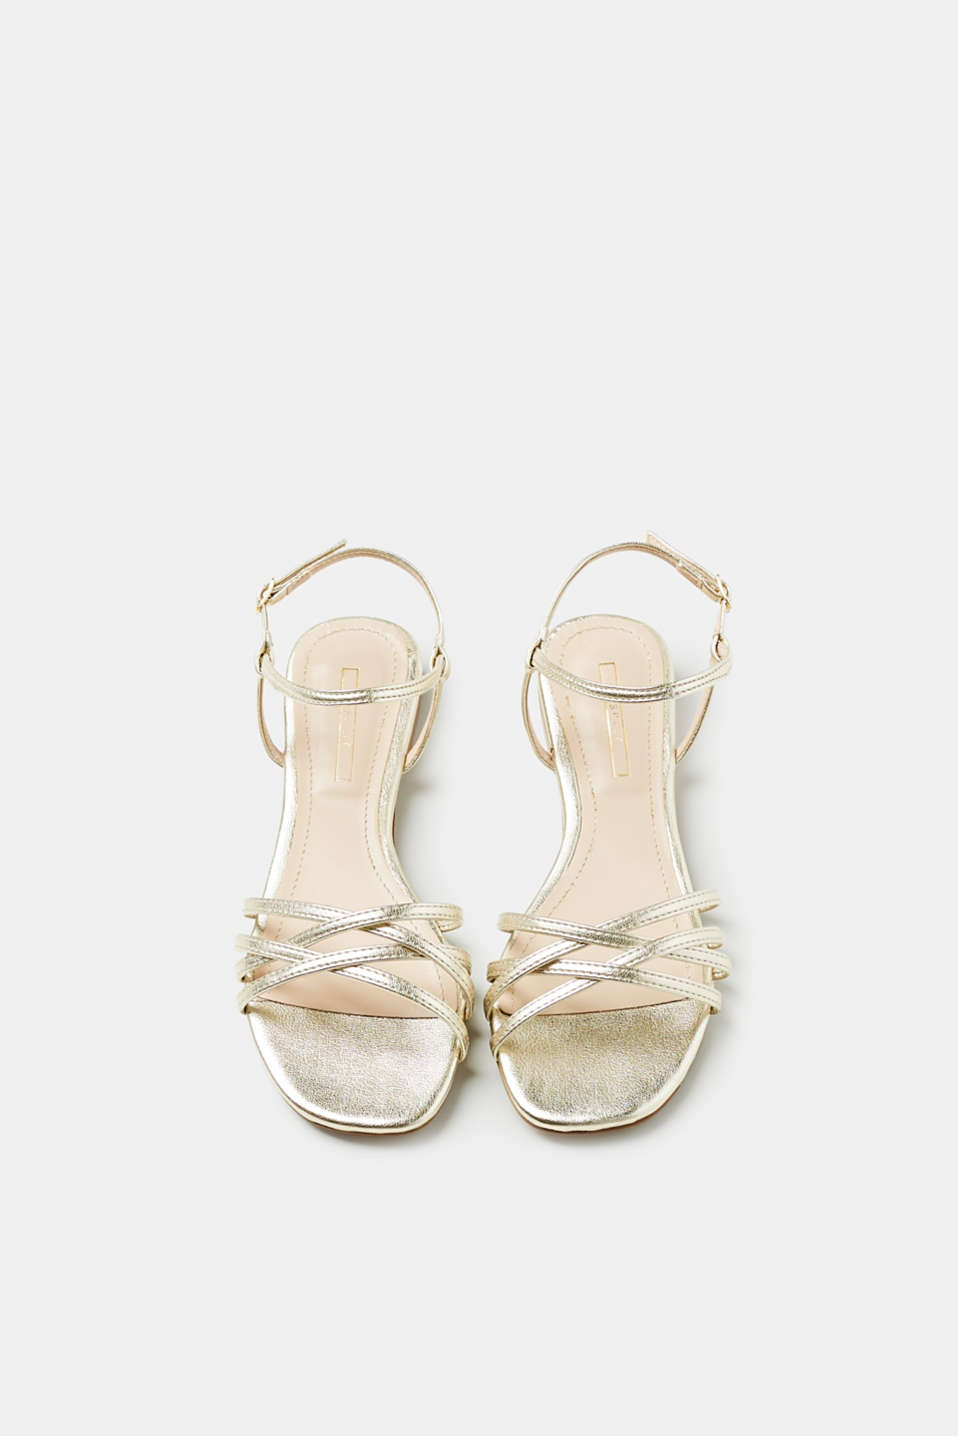 Flat sandals in a metallic look